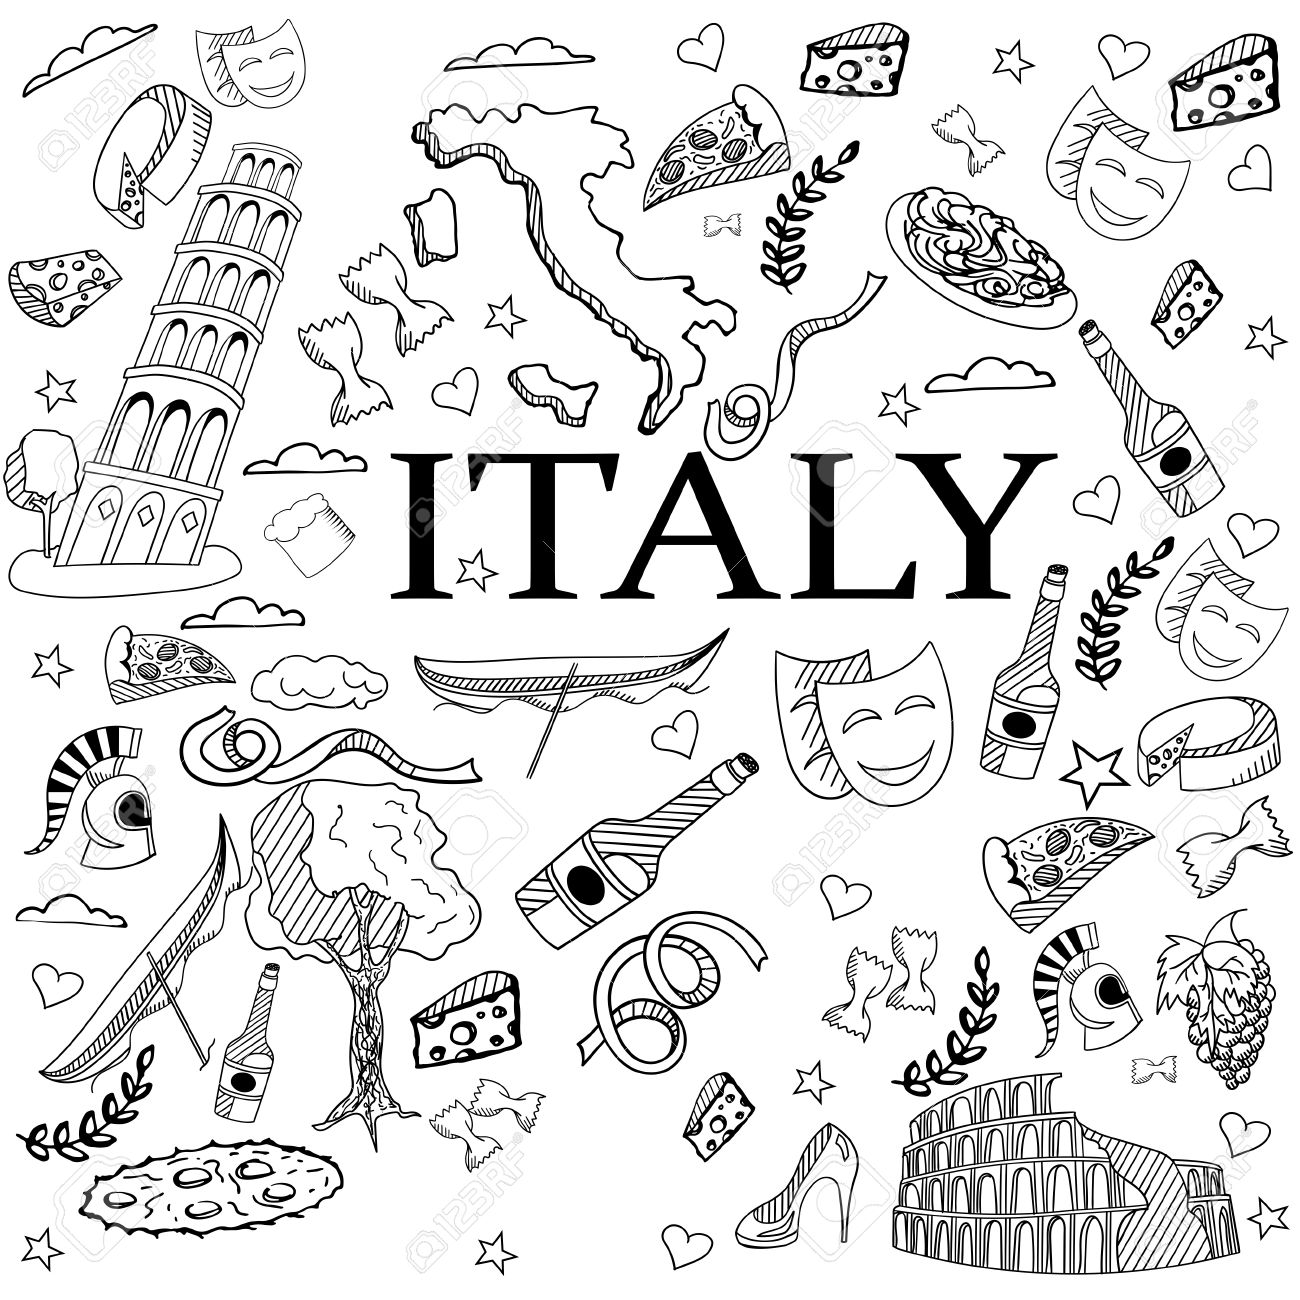 Italy Coloring Book Line Art Design Vector Illustration. Separate ...